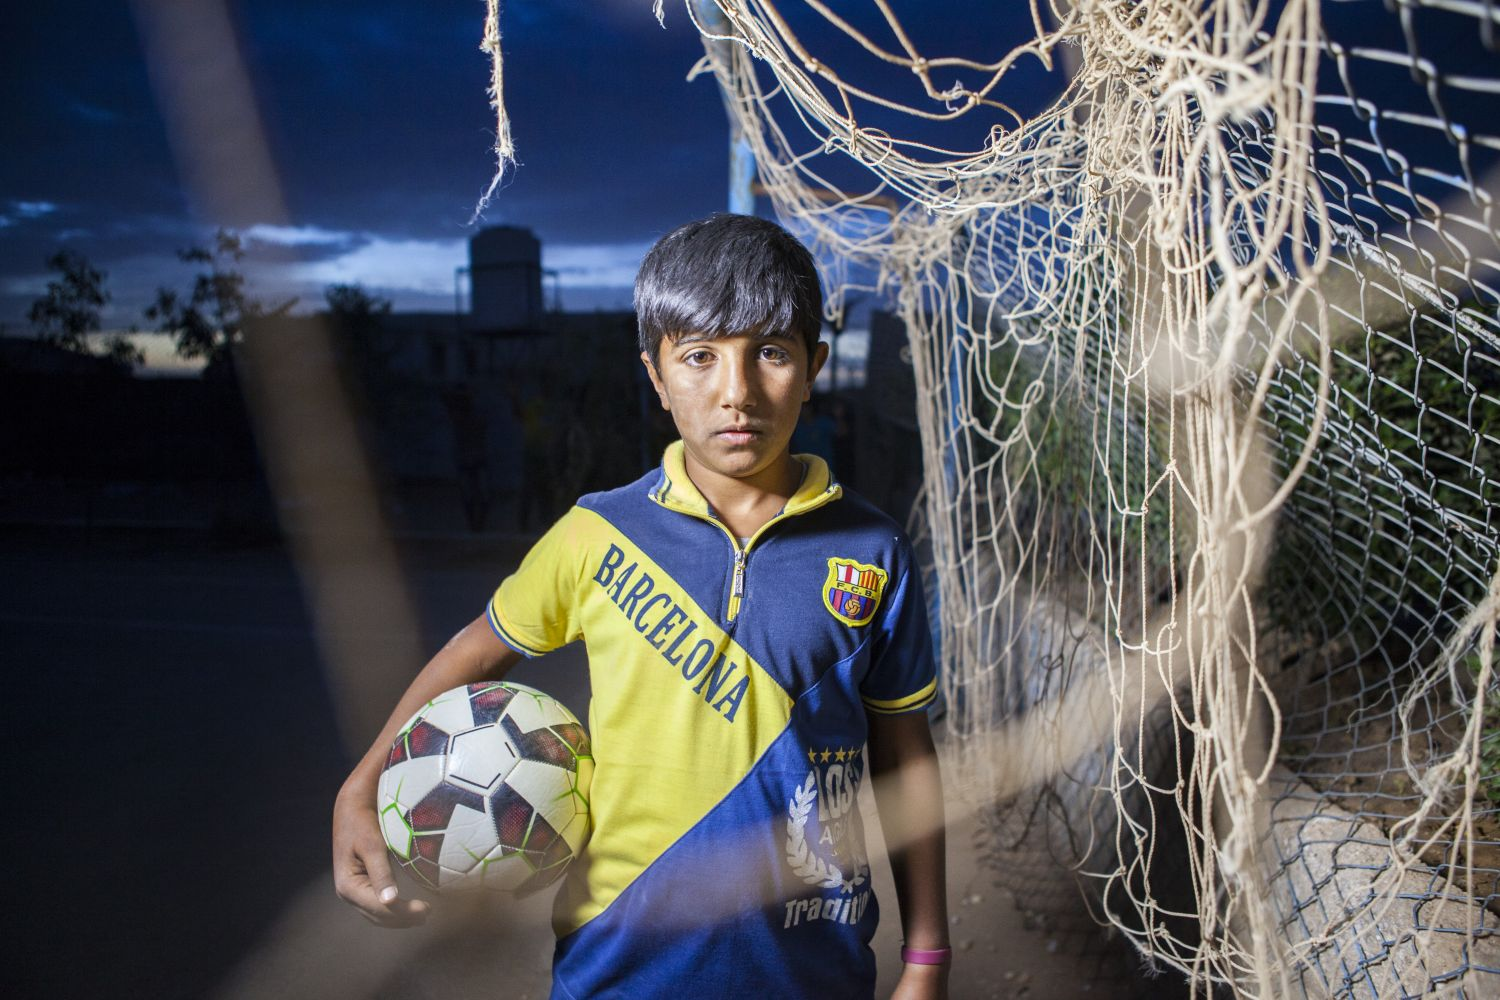 Ammar loves football. In Their Own Words, Film for UNICEF